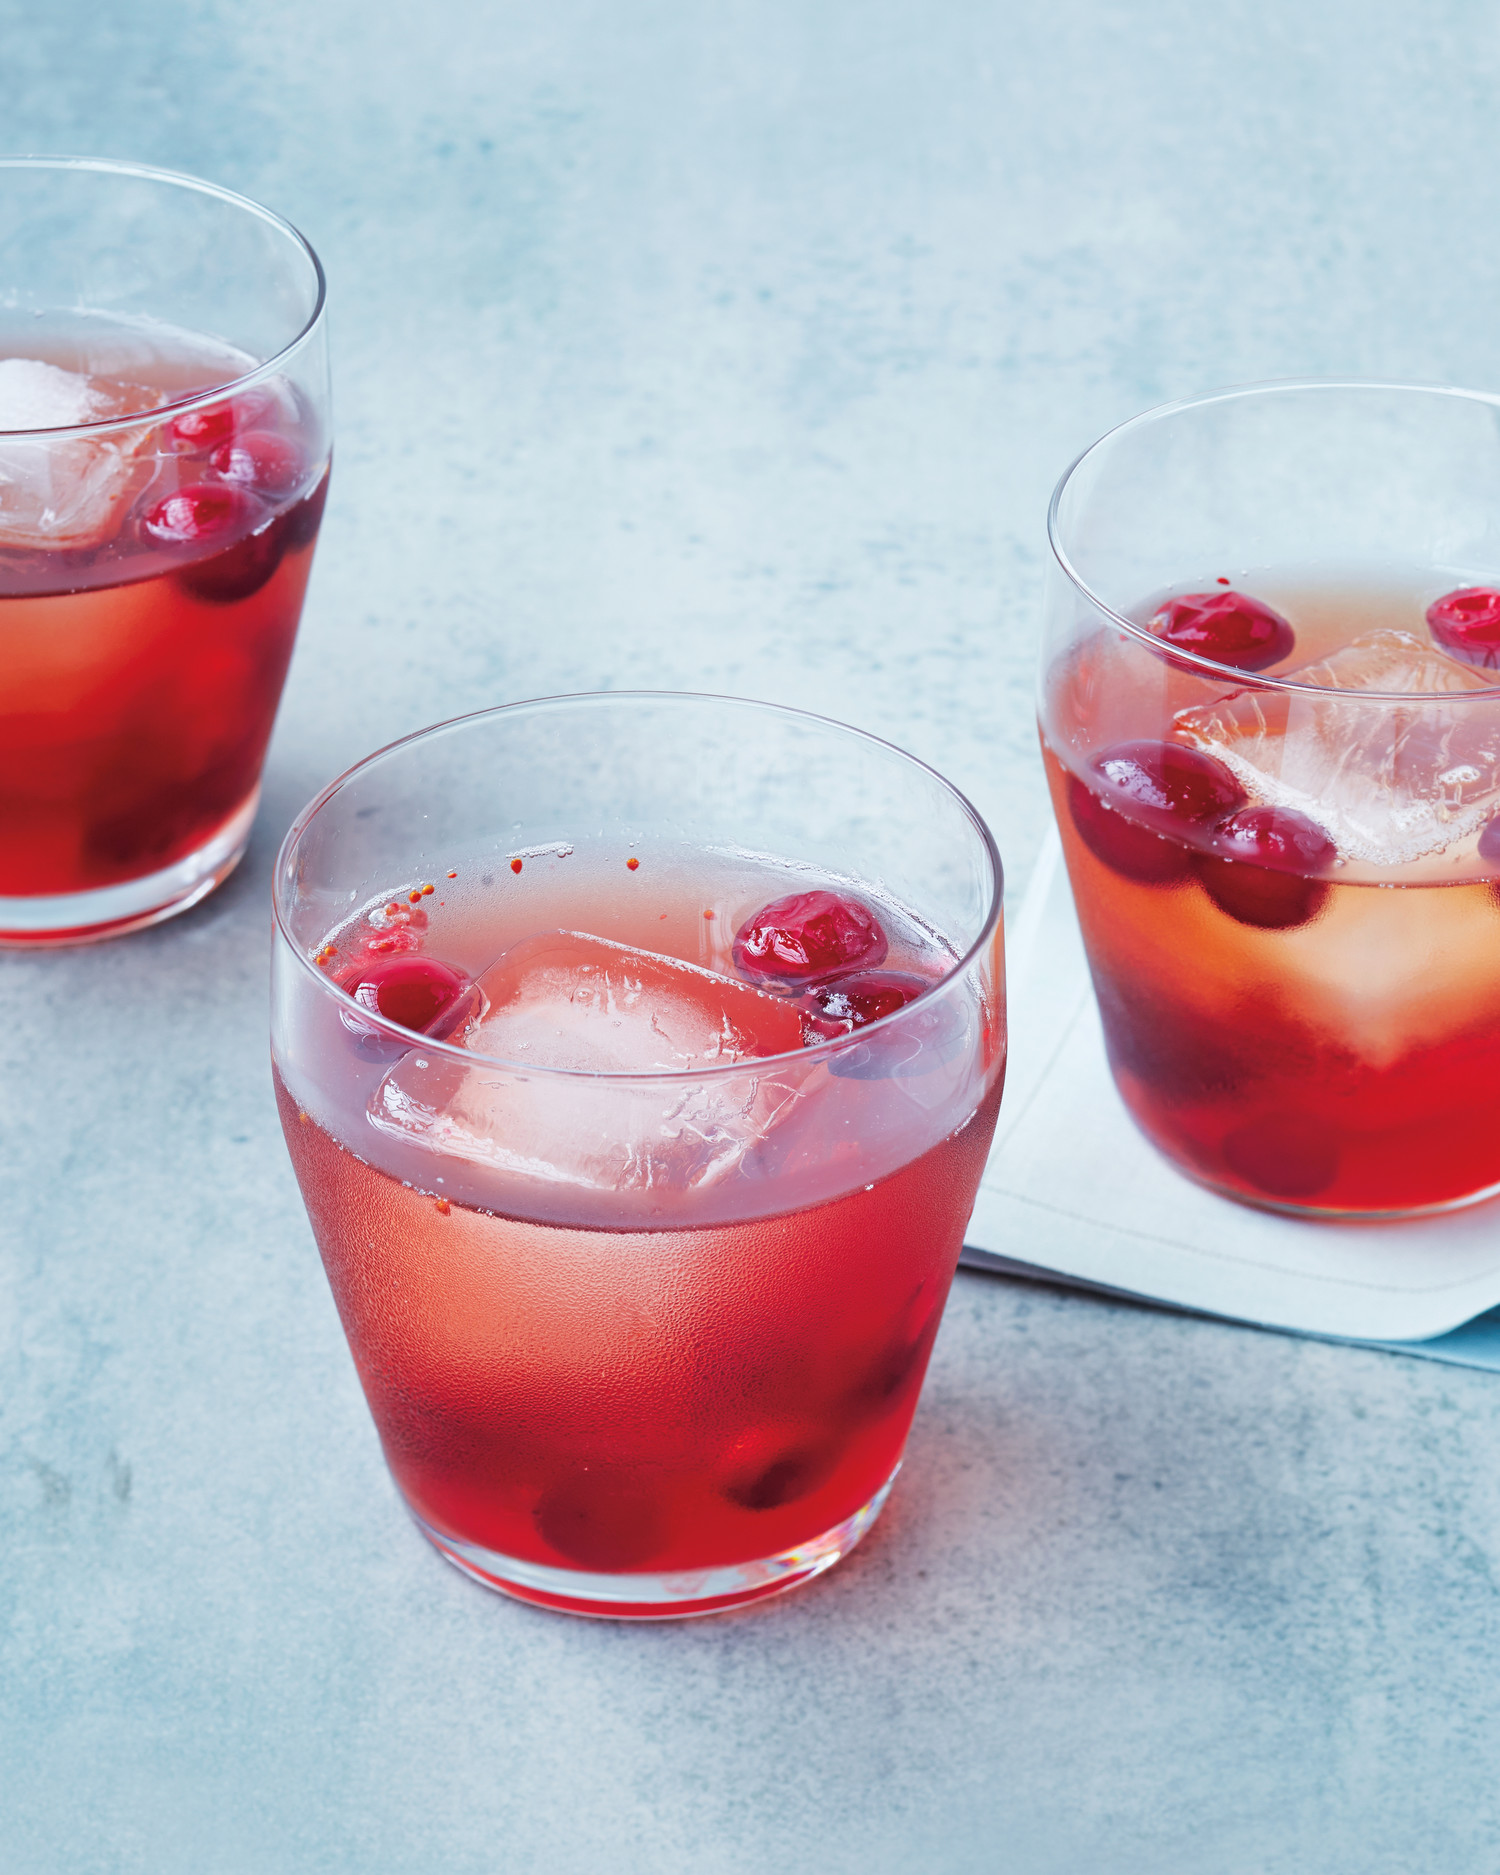 Bourbon Cranberry Shrub - Forget about Manhattans and Cosmopolitans, even older vintage cocktails are what's in with cocktail culture aficionados.